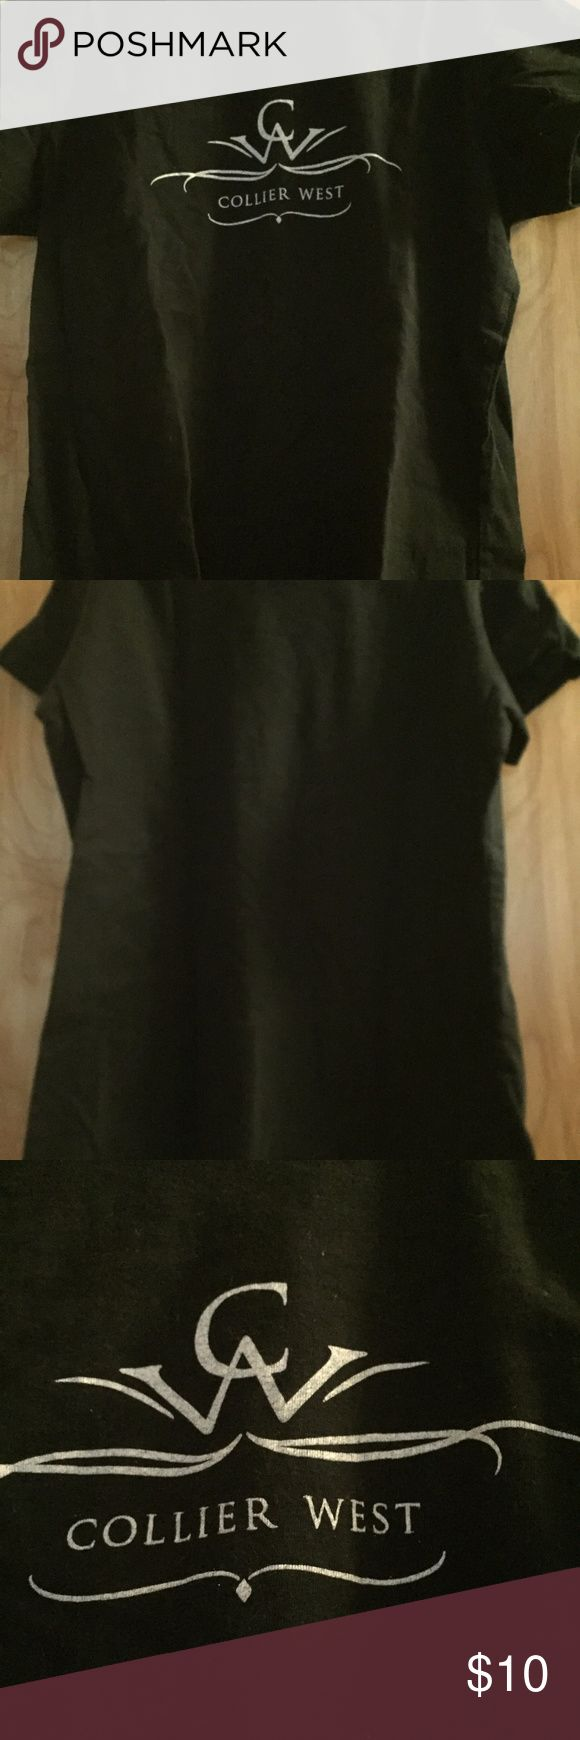 Black Petite Ladies T shirt Collier West Brand Black tshirt that says Collier West in white letters on front. This shirt was barely worn. No defects. Size ladies petite, so it is small. It isn't a boxy tshirt, hugs to the body. 100% cotton. Simple scoop neck. The brand that manufactured it is called Bella. Collier West Tops Tees - Short Sleeve